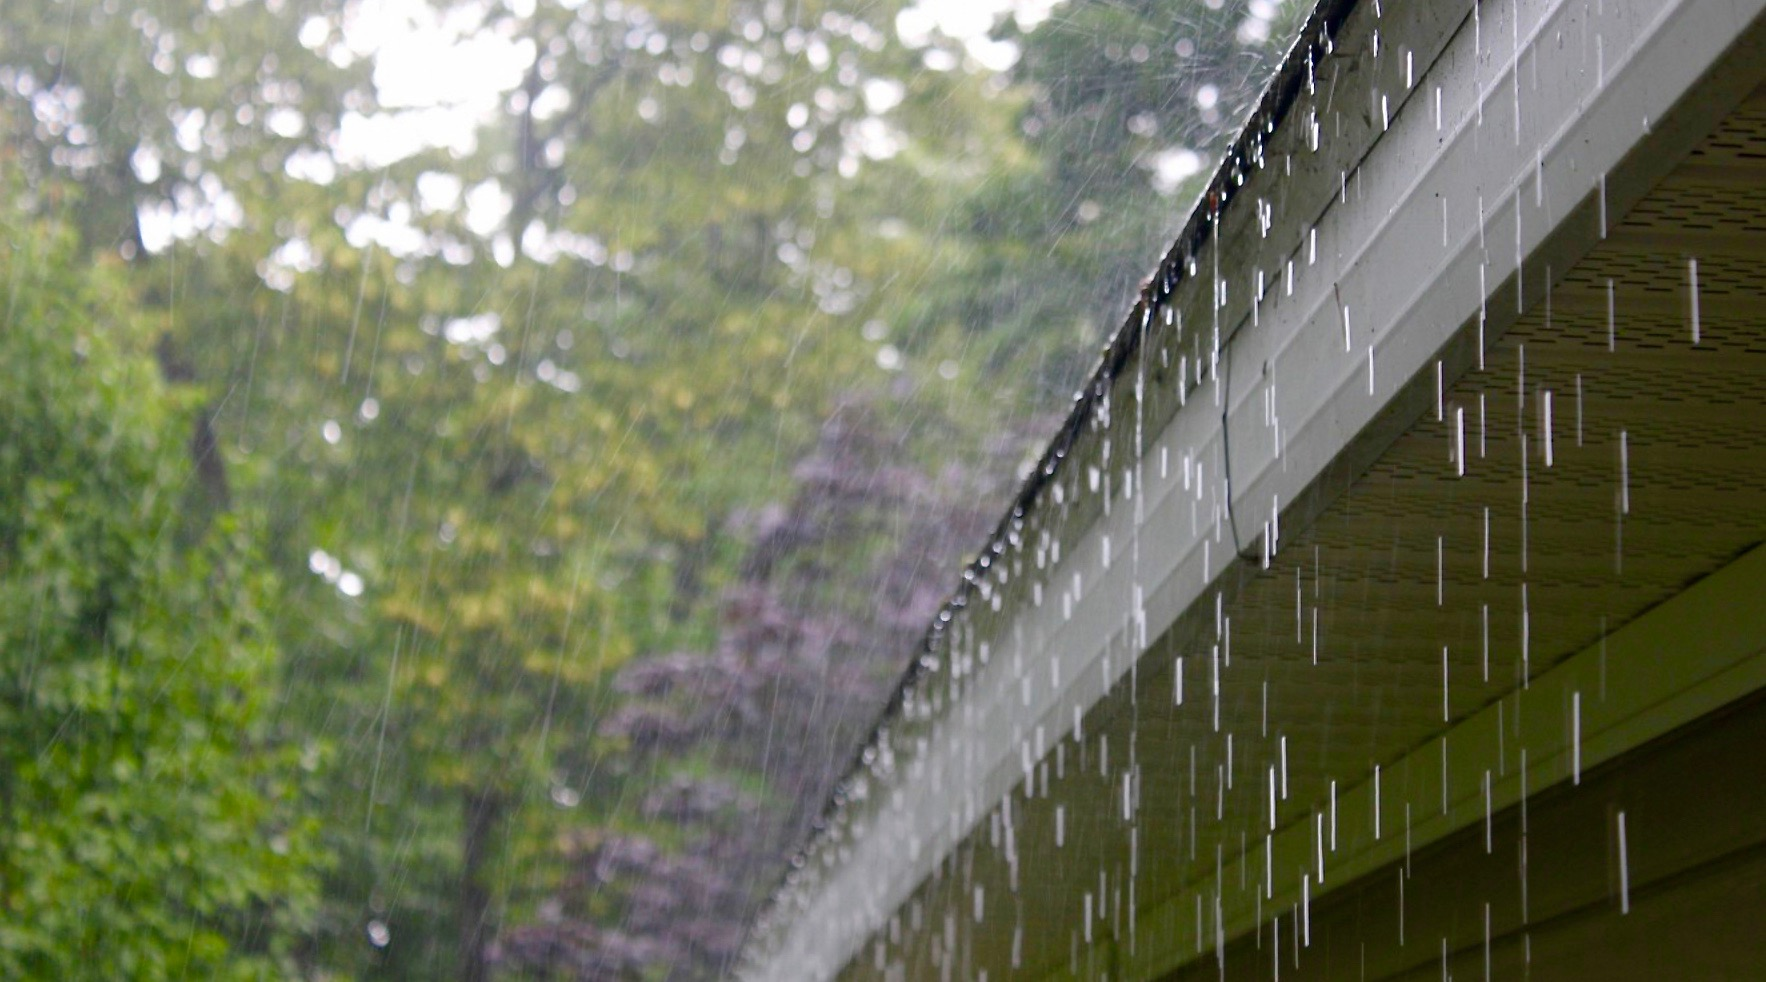 Gutters Are Loud How To Stop Loud Rain Gutters